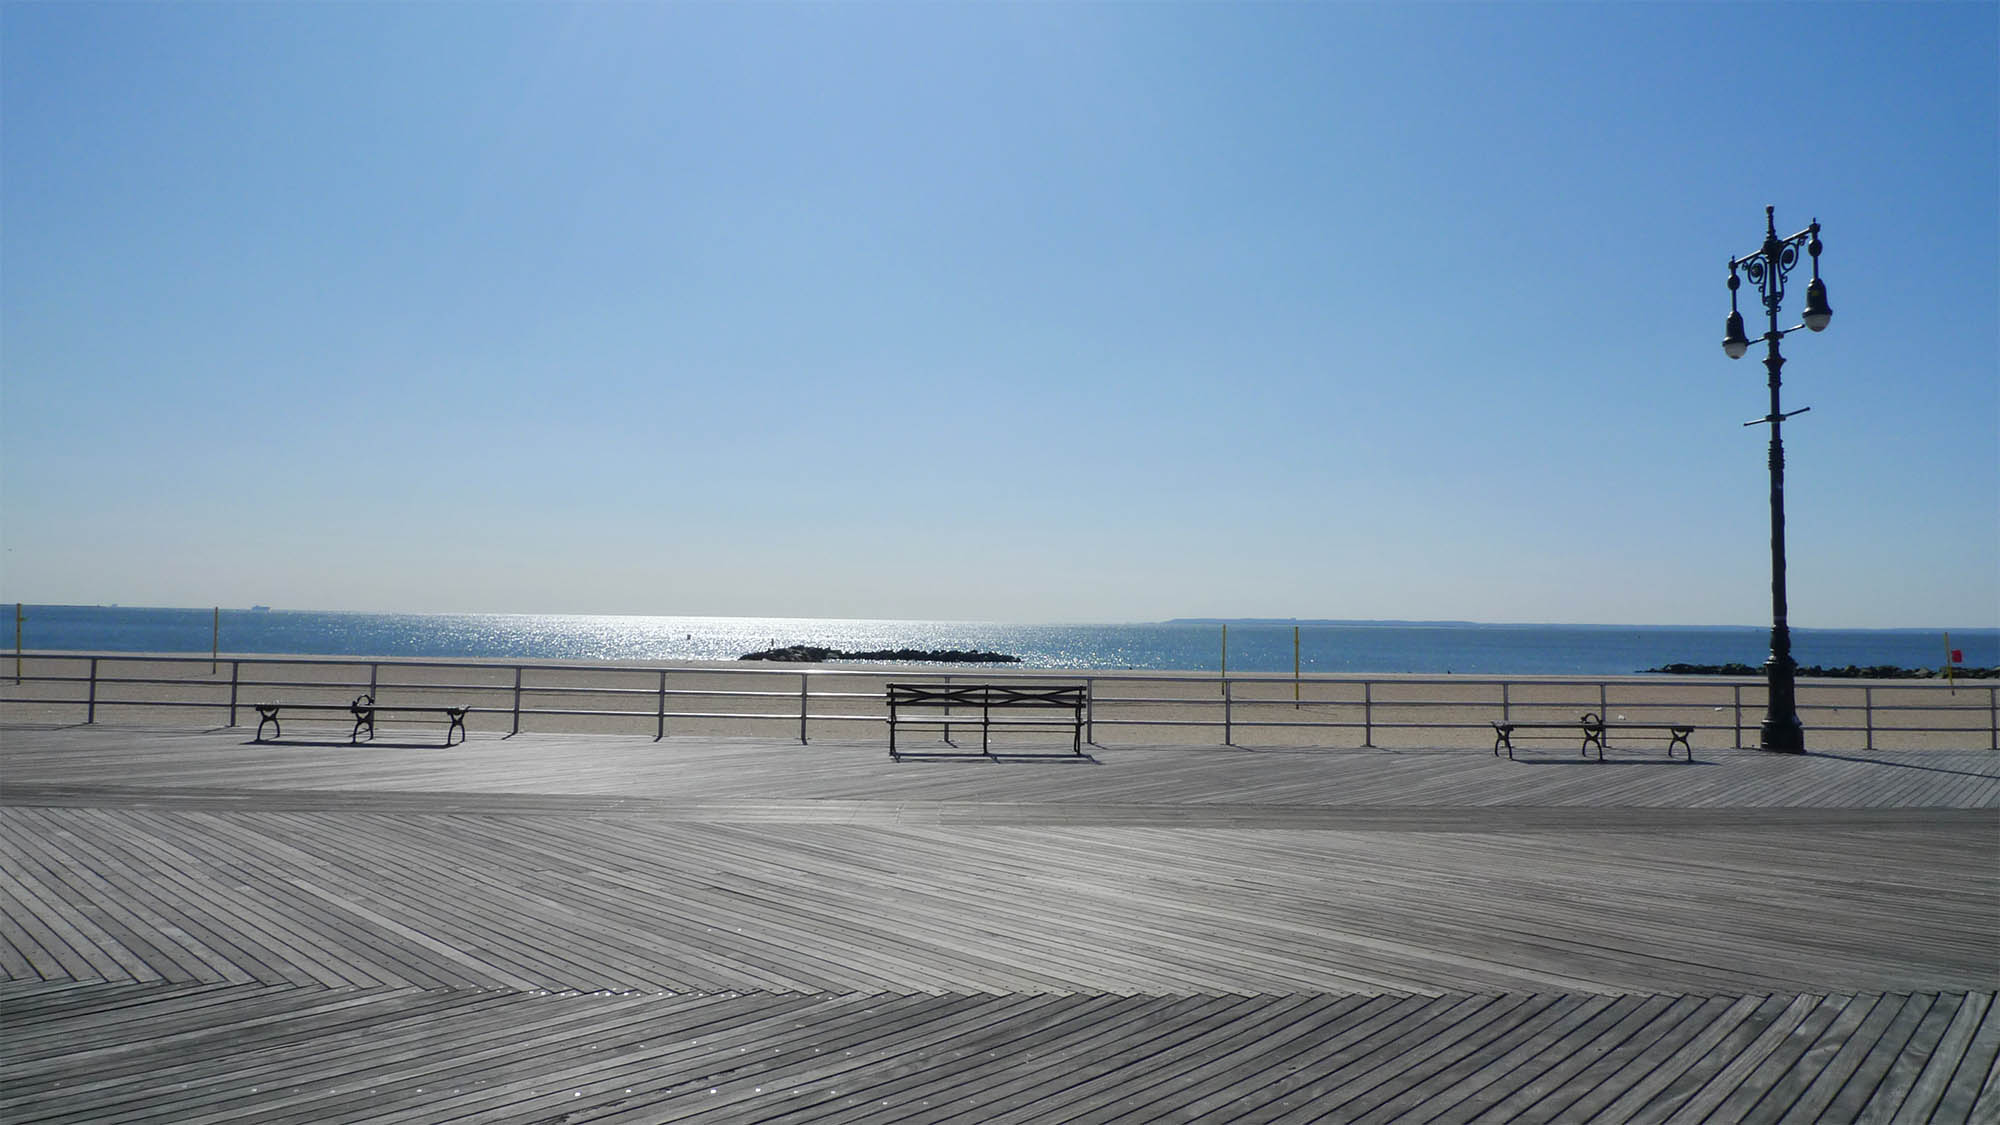 Vacant Coney Island Boardwalk with bench overlooking ocean